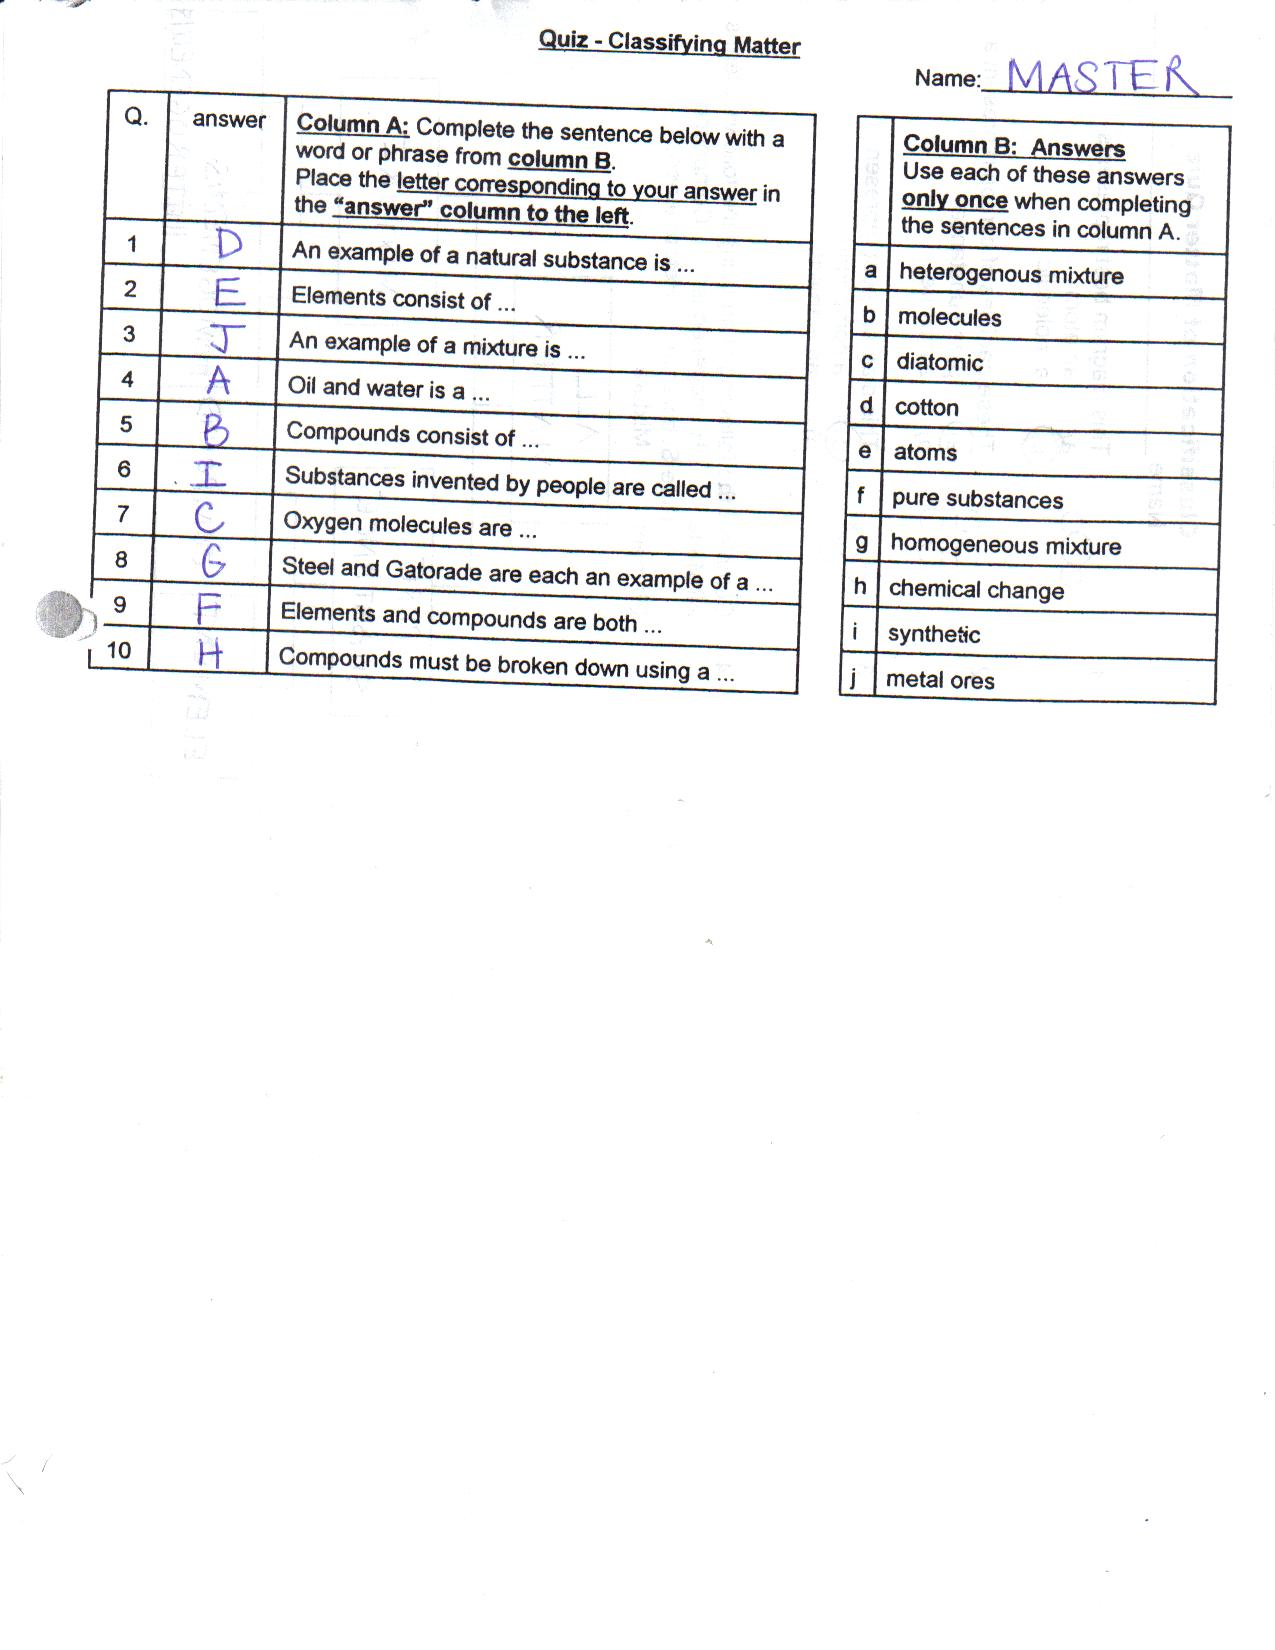 Properties Of Matter Worksheet Answers